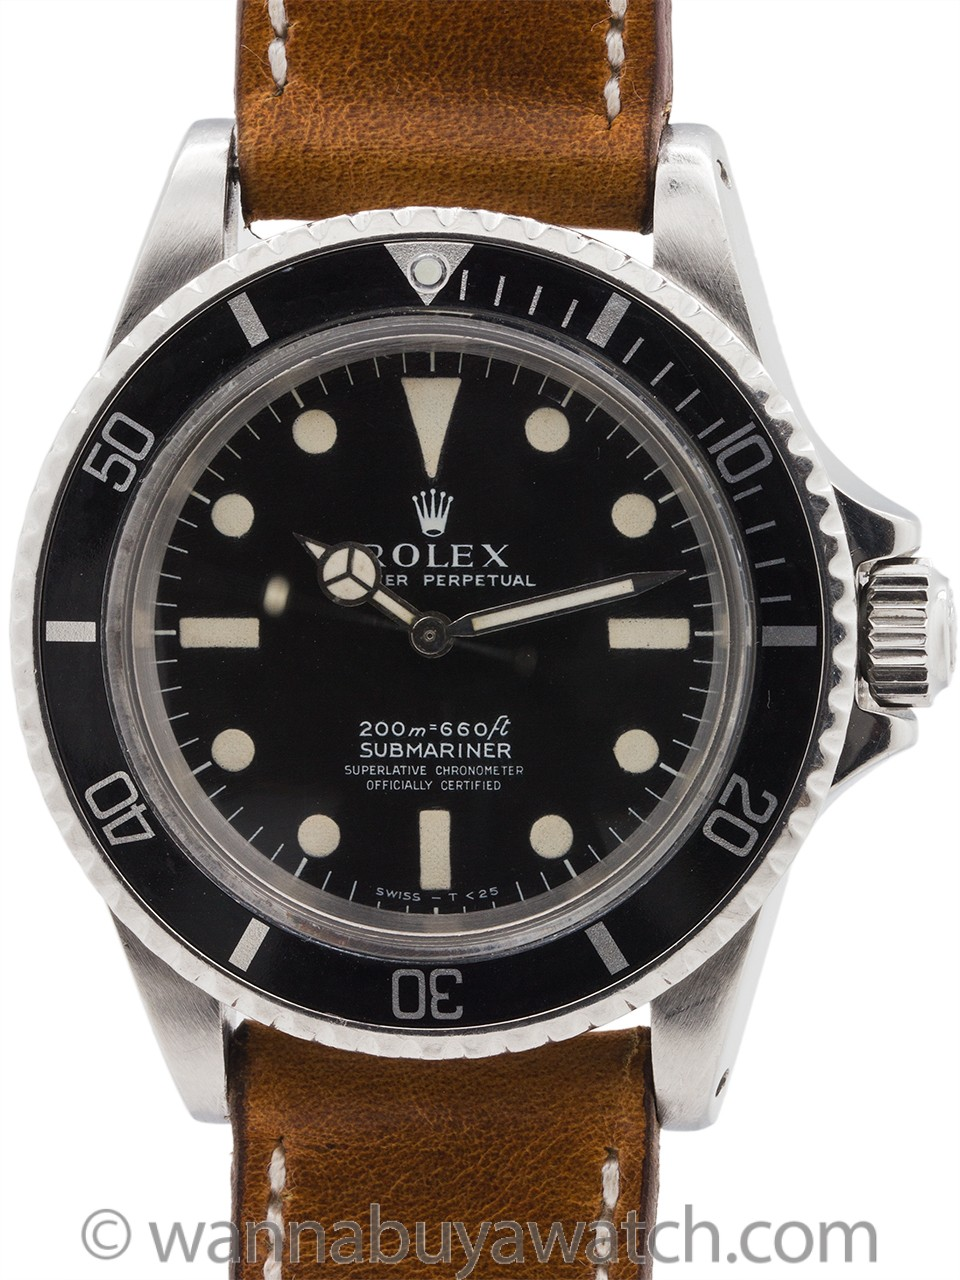 Rolex Submariner ref 5512 Meters First circa 1969